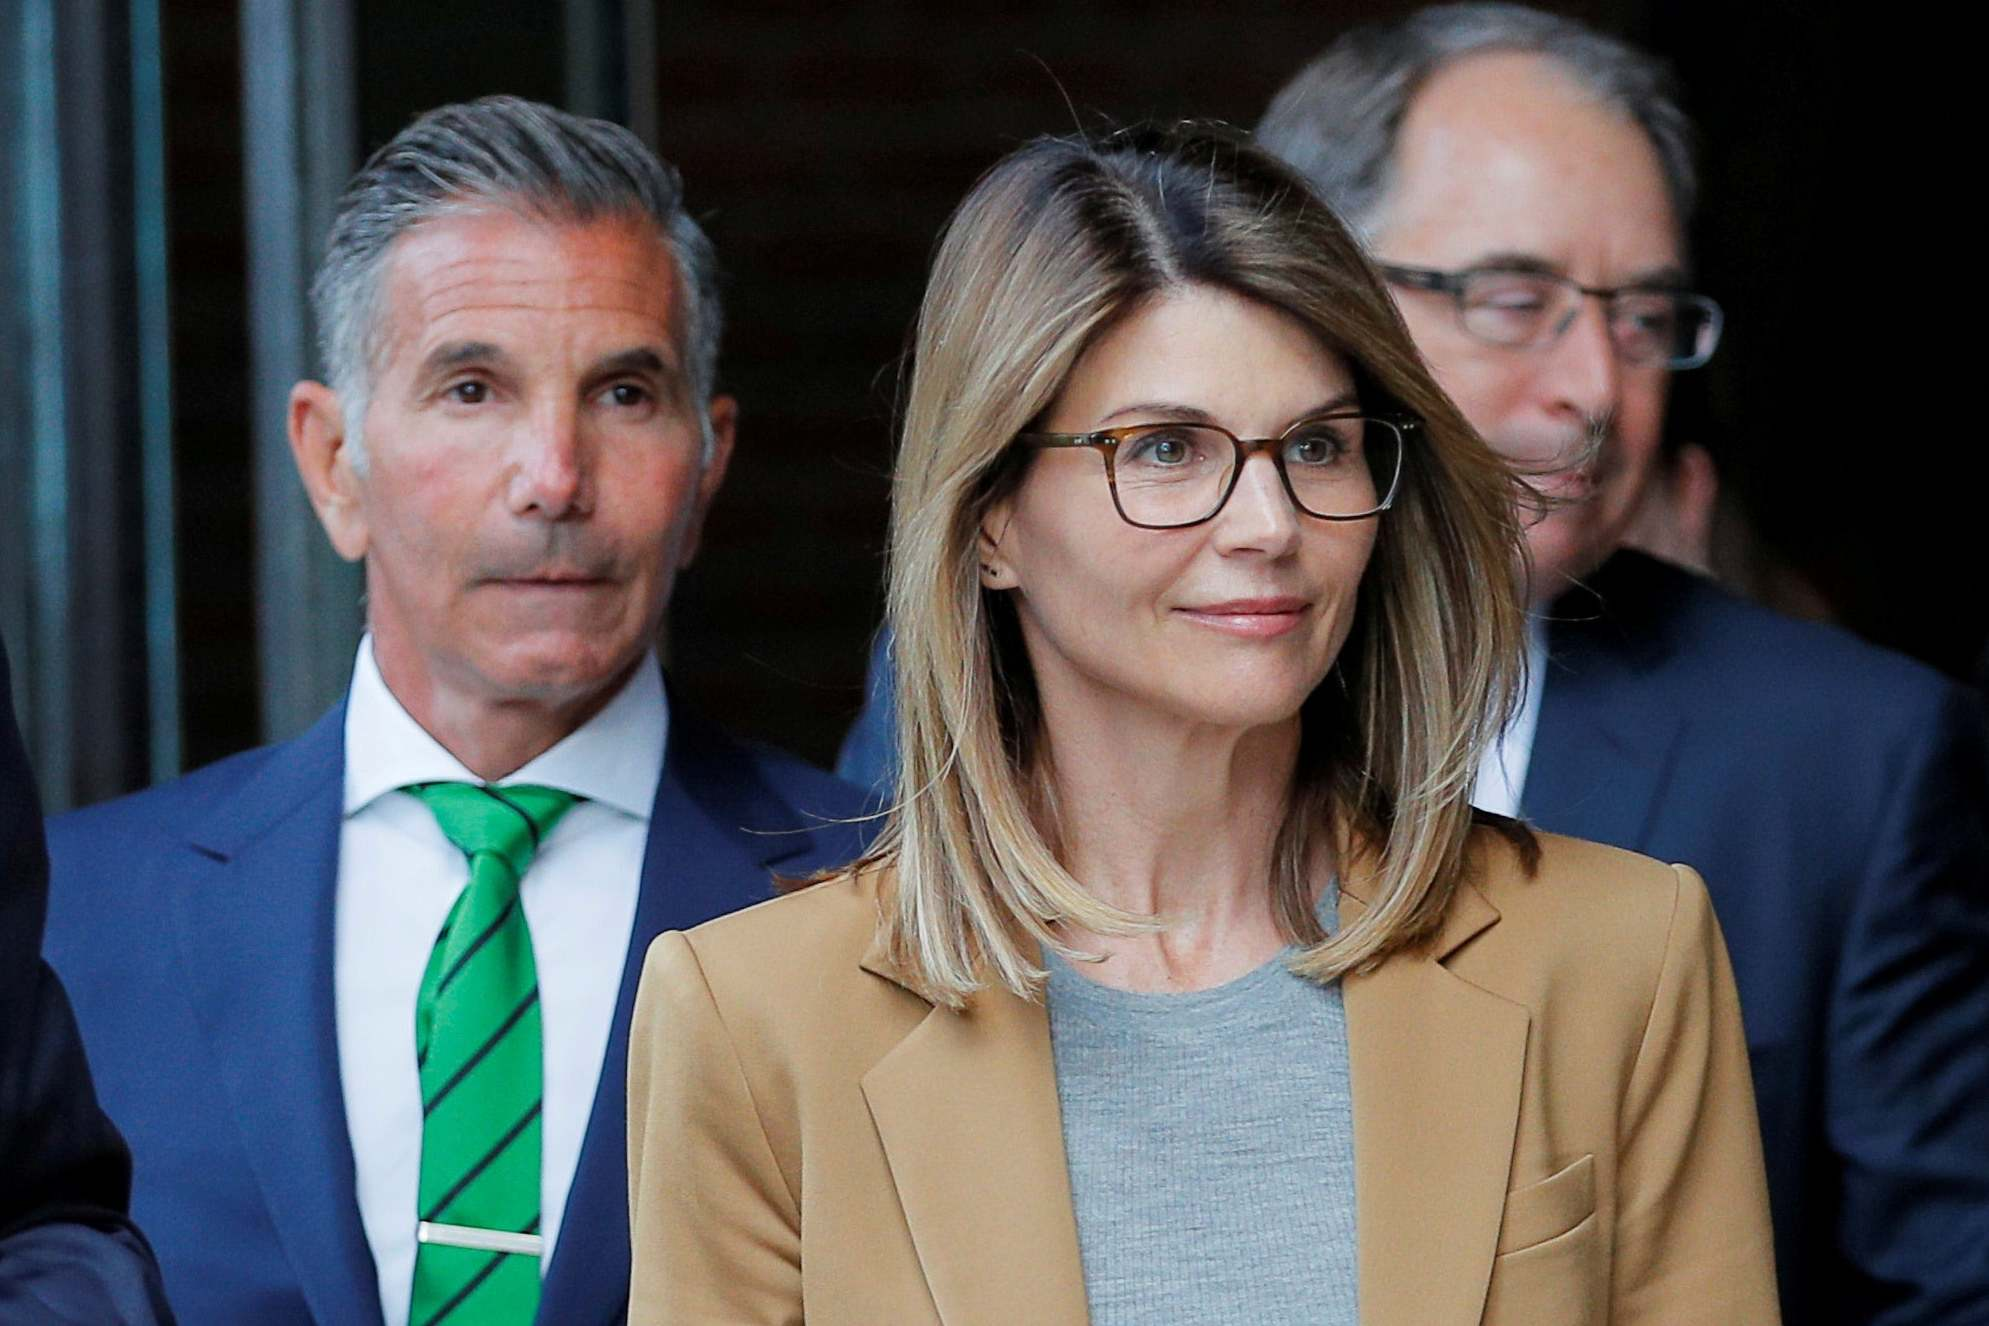 Lori Loughlin launched after serving jail term for college bribes scam